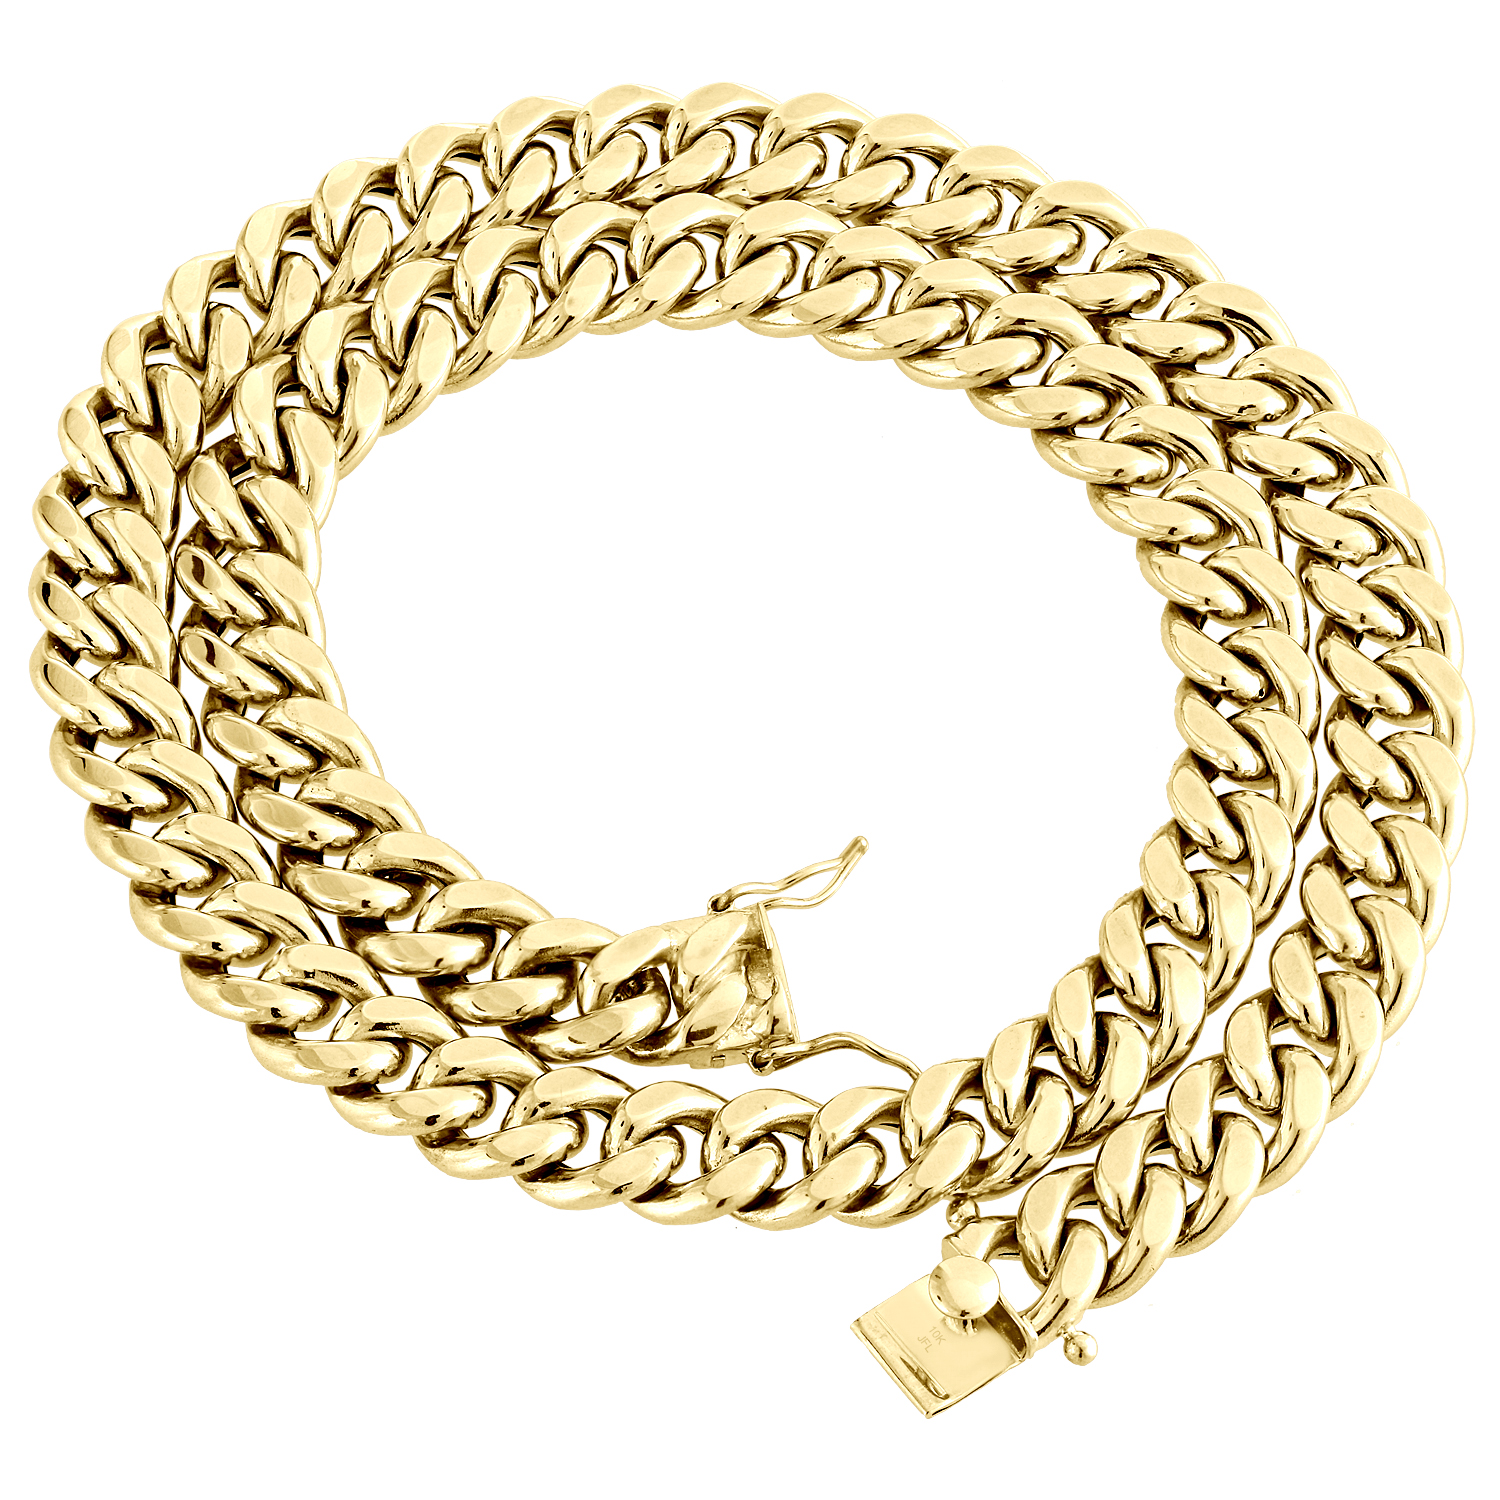 Details about  /10K Hollow Gold Cuban Chain 26 Inches 2mm 2.1 Grams